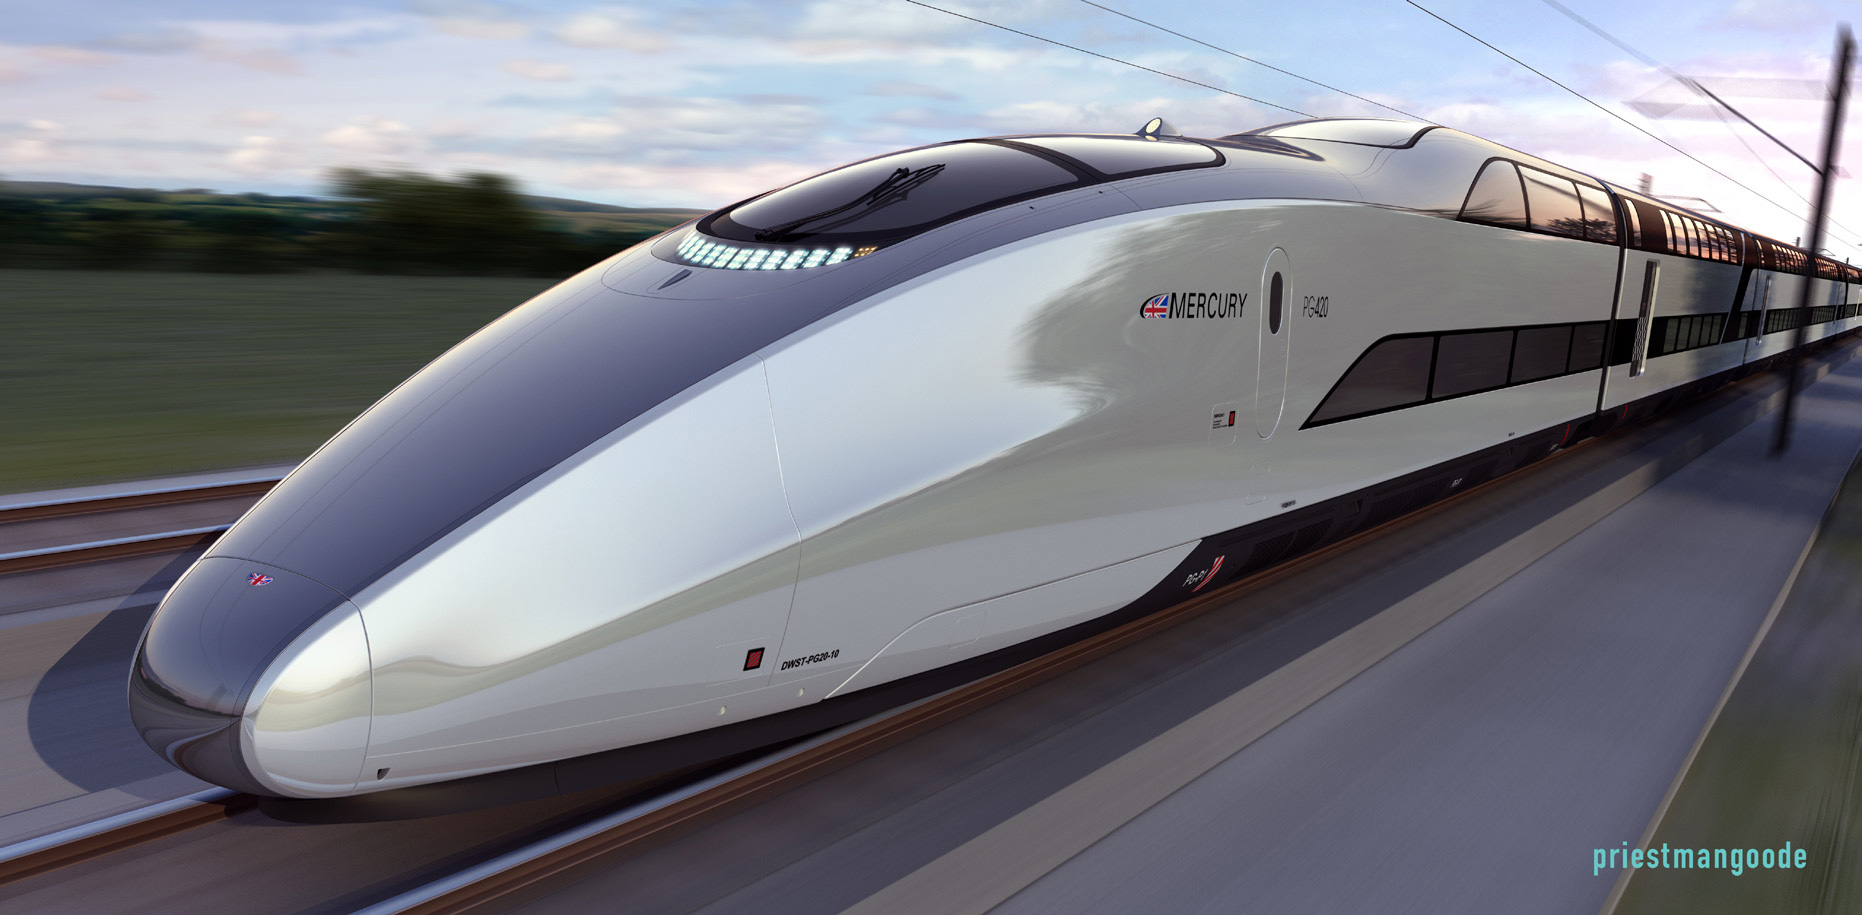 Mercury - Britain's New High Speed Ttrain Concept